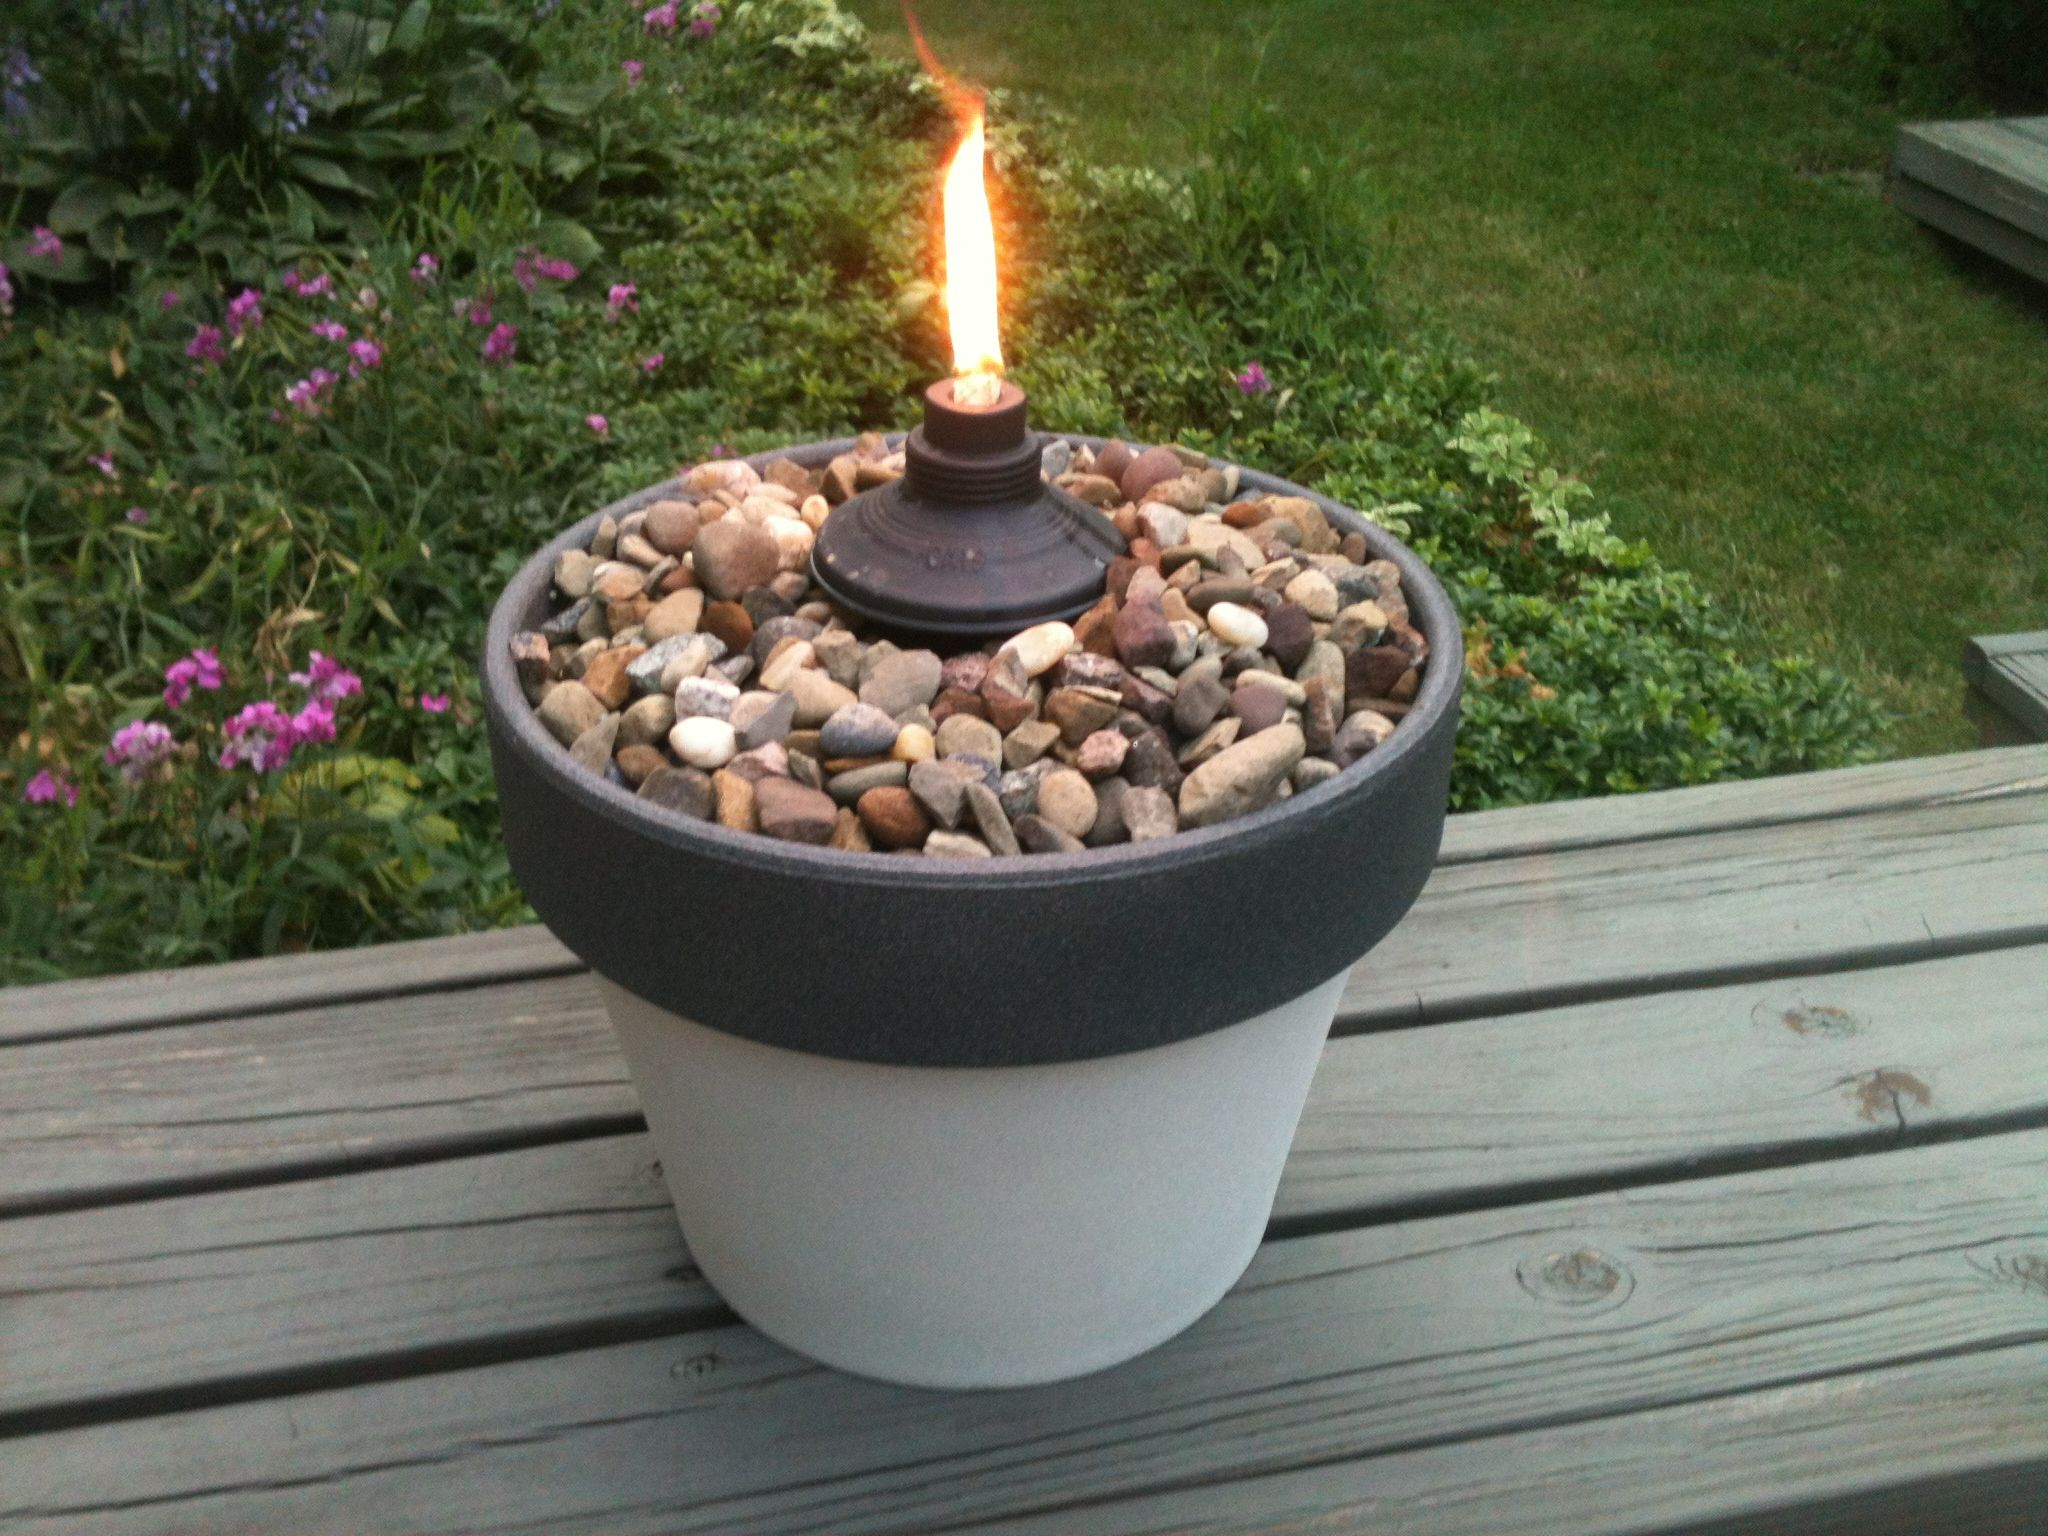 Table Tiki Torch Spray Paint Terra Cotta Pot River Pebbles Canister Pretty